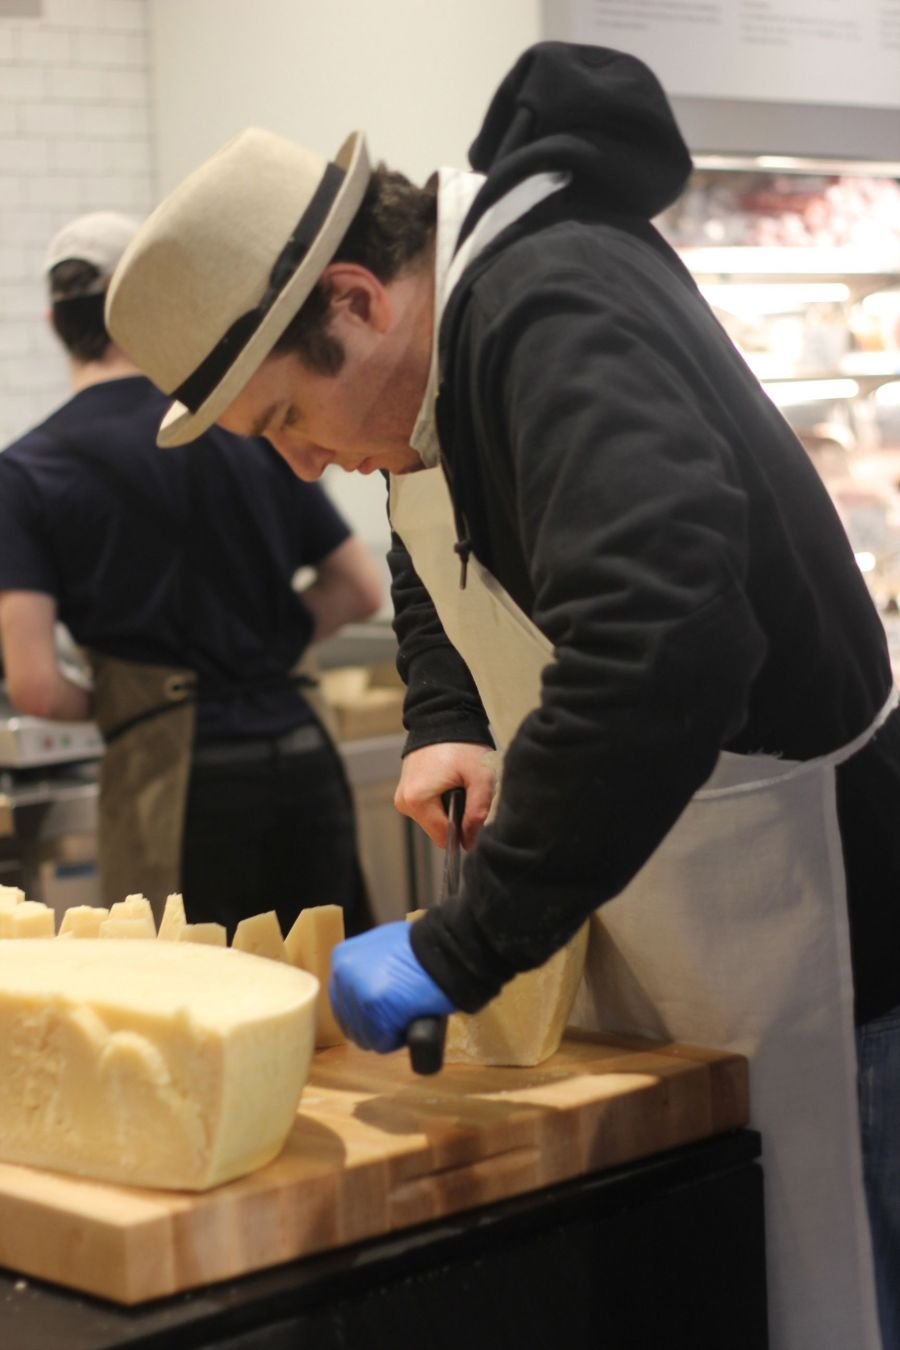 boston-eataly-december-10-5